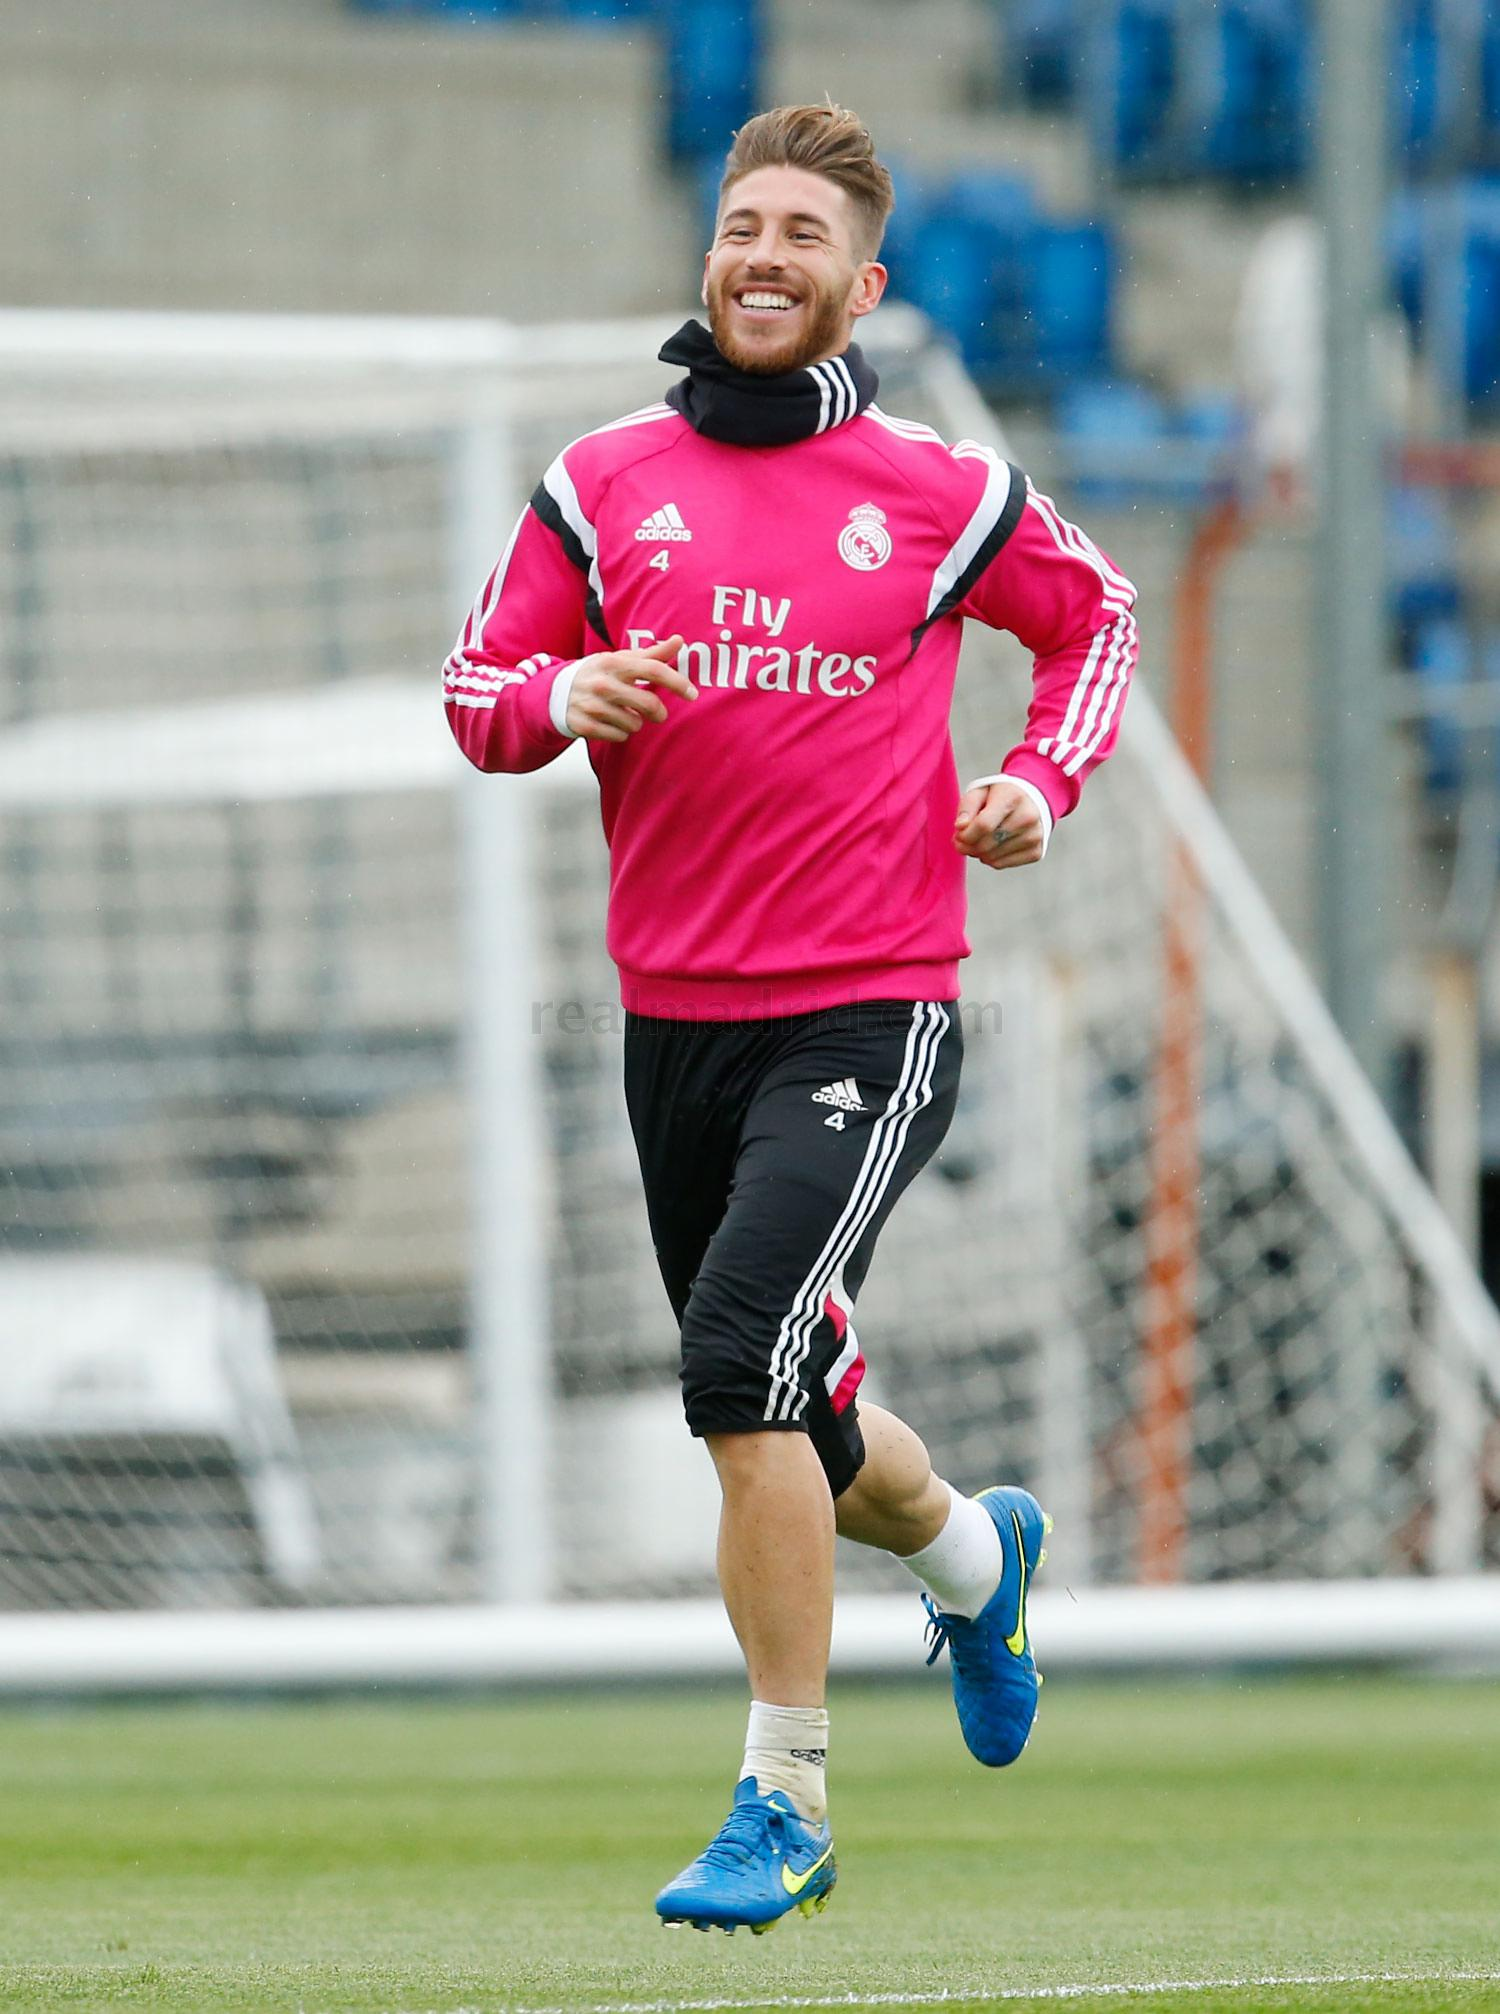 Real Madrid - Entrenamiento del Real Madrid - 21-03-2015